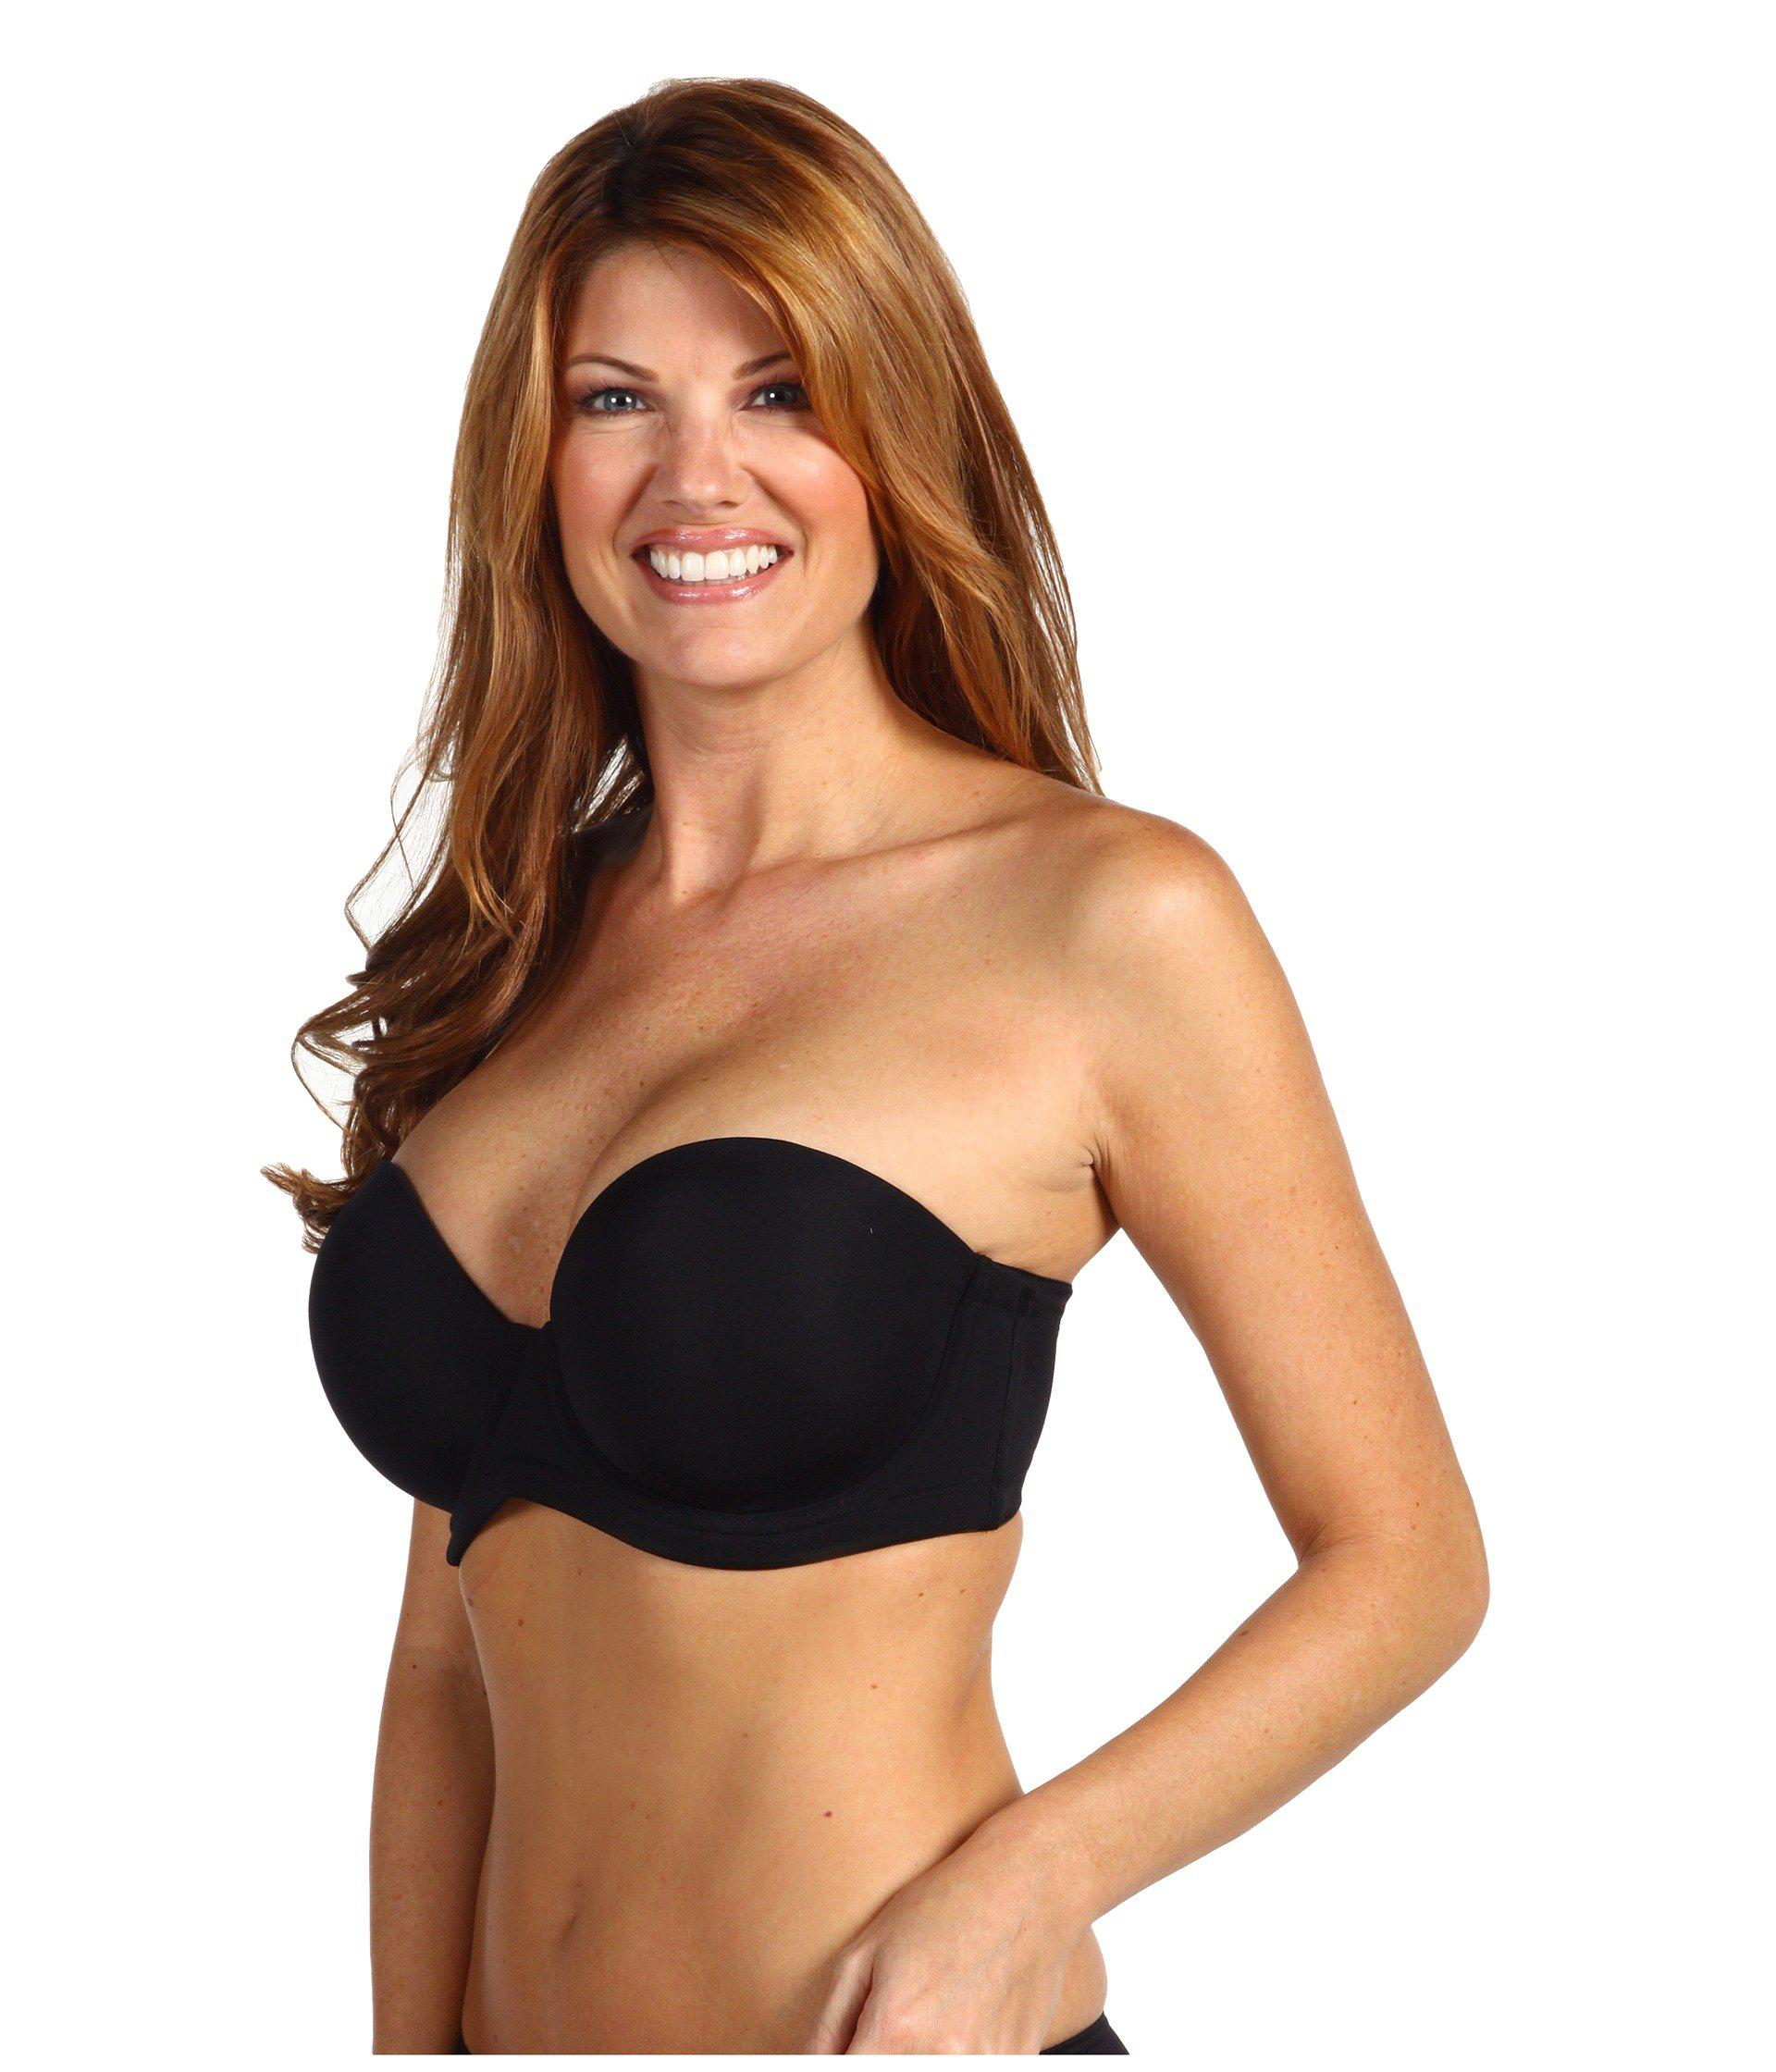 f34ee79bee Lyst - Wacoal Red Carpet Full-figure Strapless Bra in Black - Save 4%